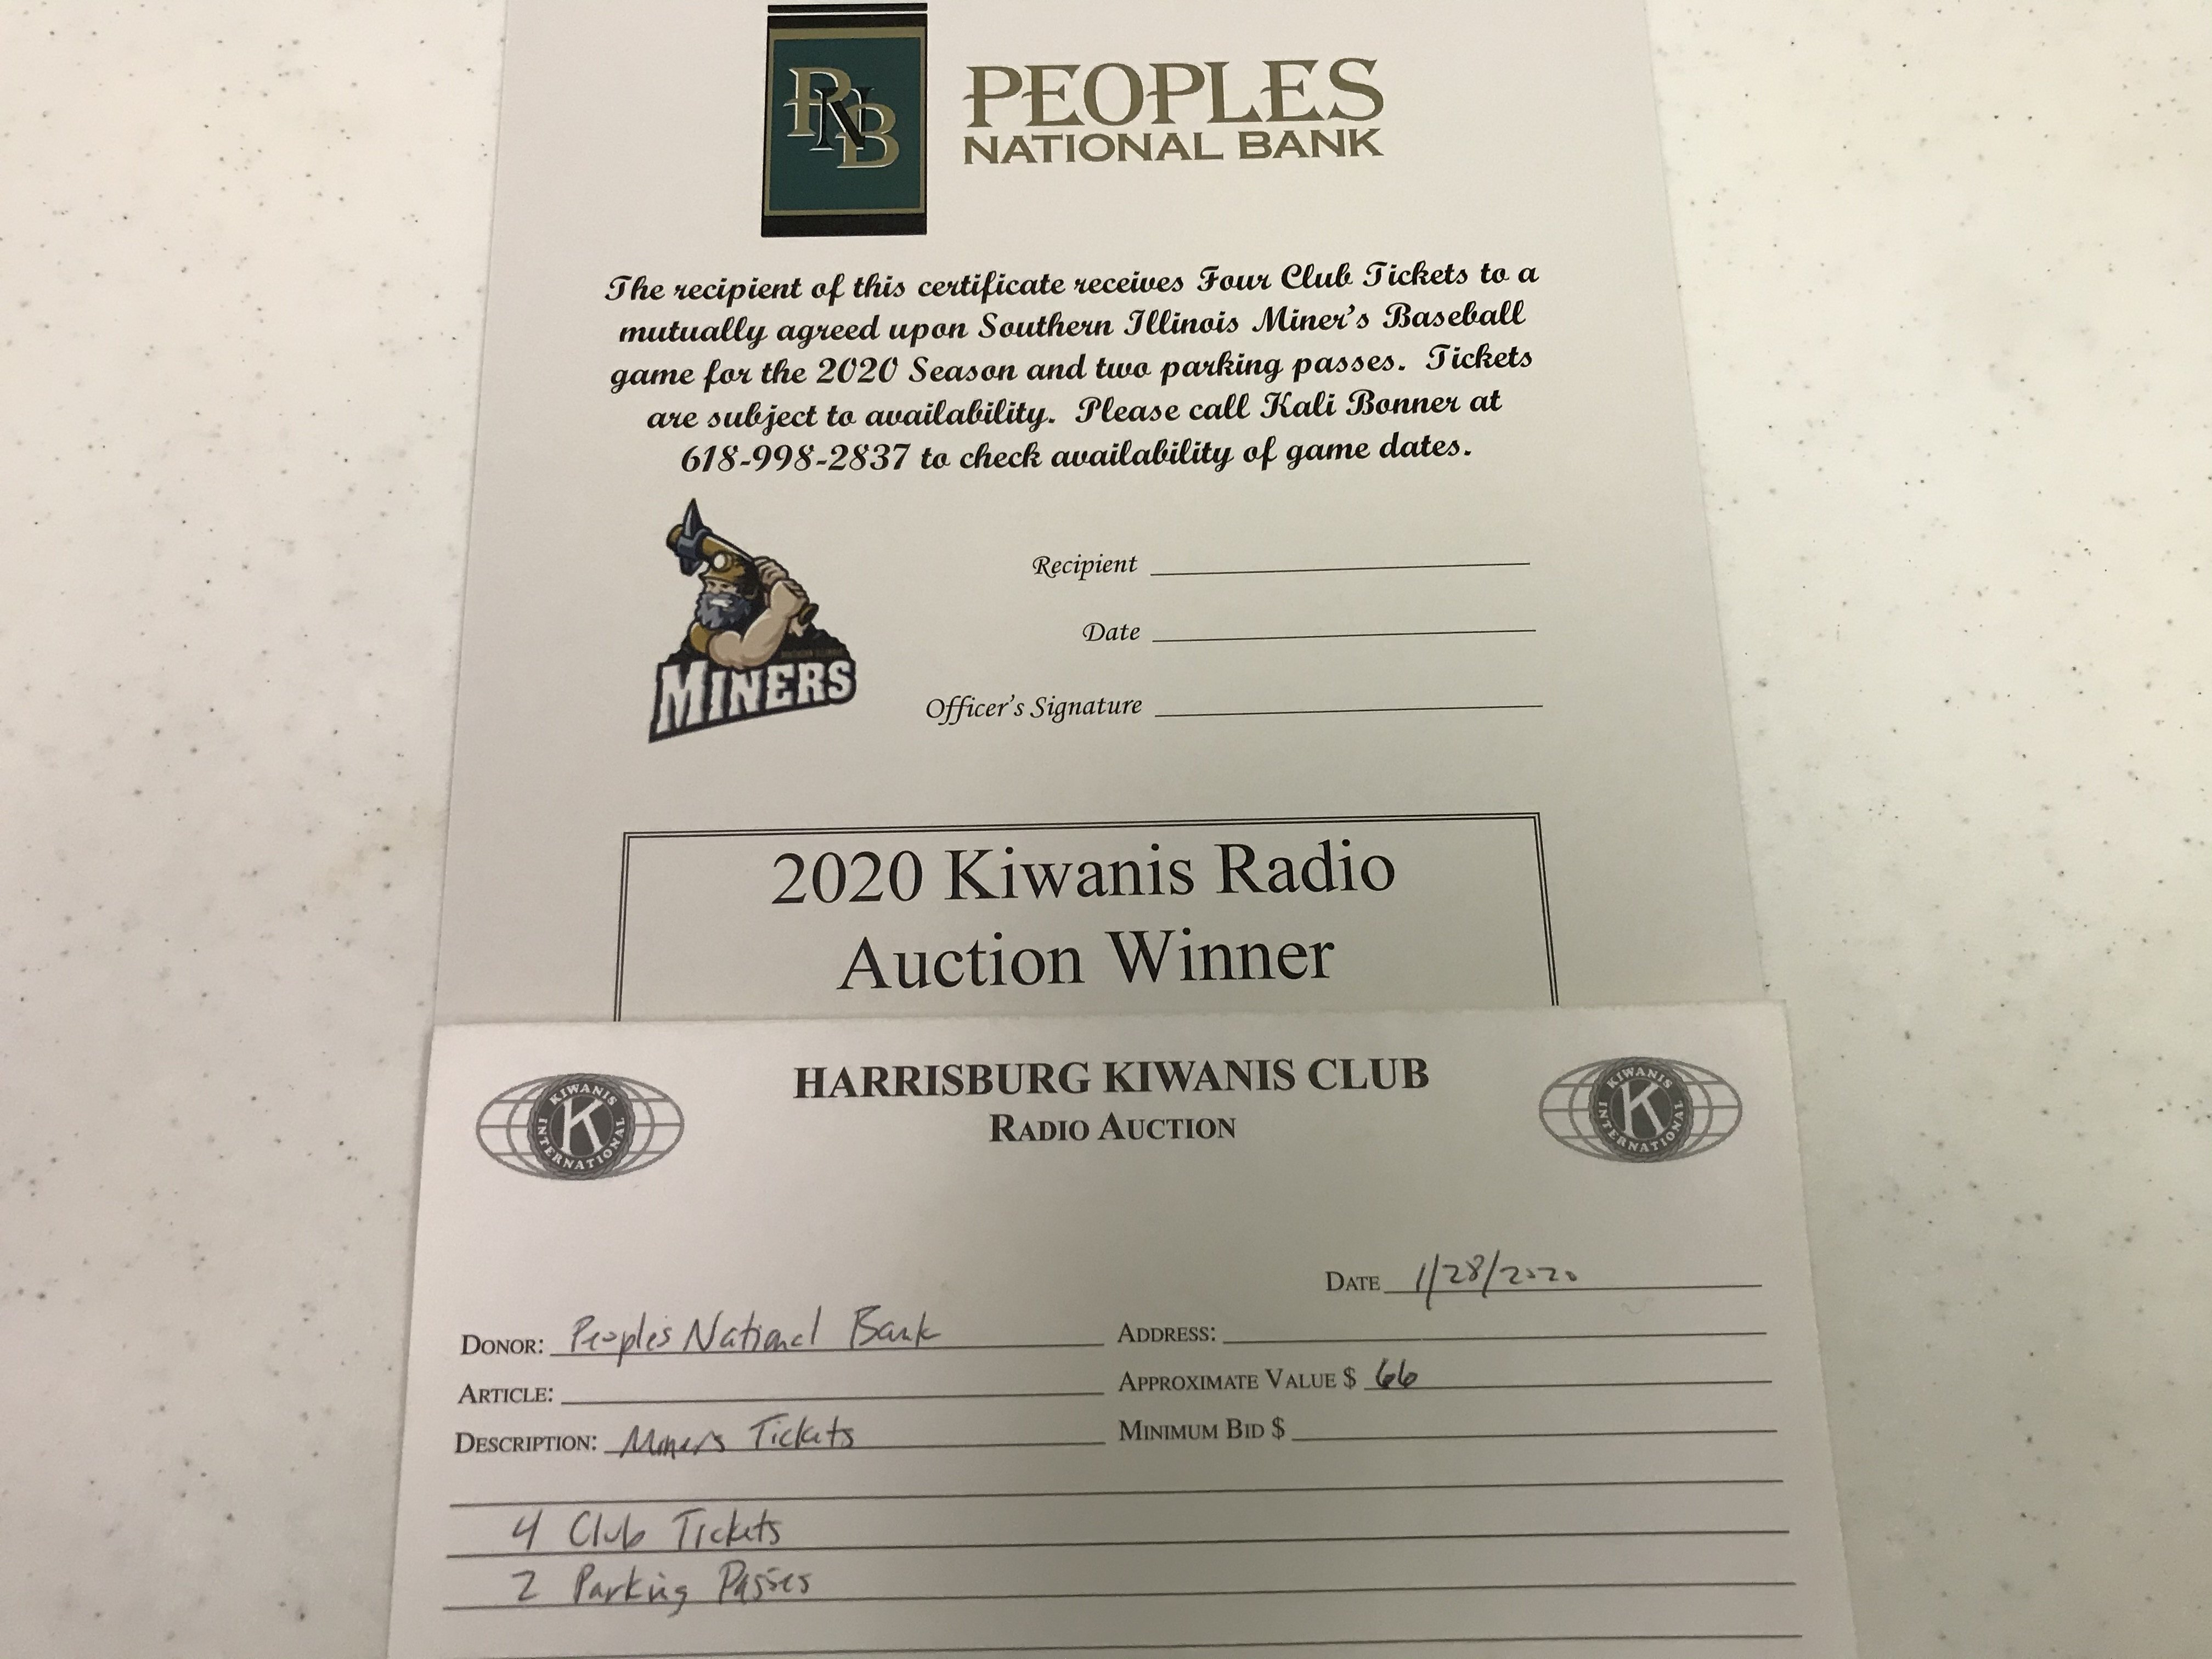 Item 217 - Peoples National Bank Miners Tickets - 4 Club Level Seats and 2 Parking Passes